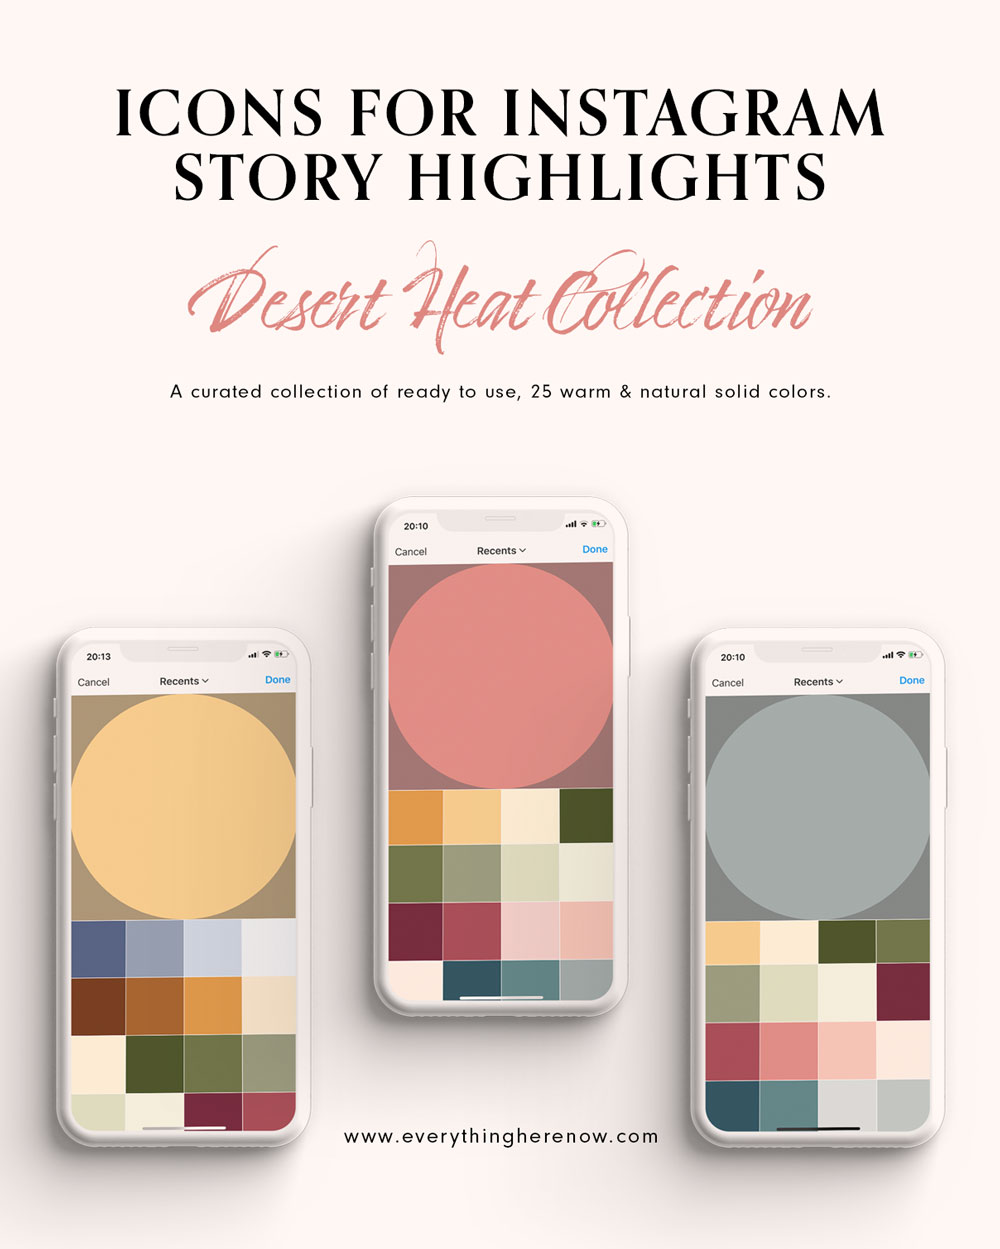 Icons for Instagram Story Highlights: Desert Heat Collection #instagram #instagramhighlights #icons Icons for Instagram Story Highlights: Desert Heat Collection #instagram #instagramhighlights #icons https://everythingherenow.com/shop/